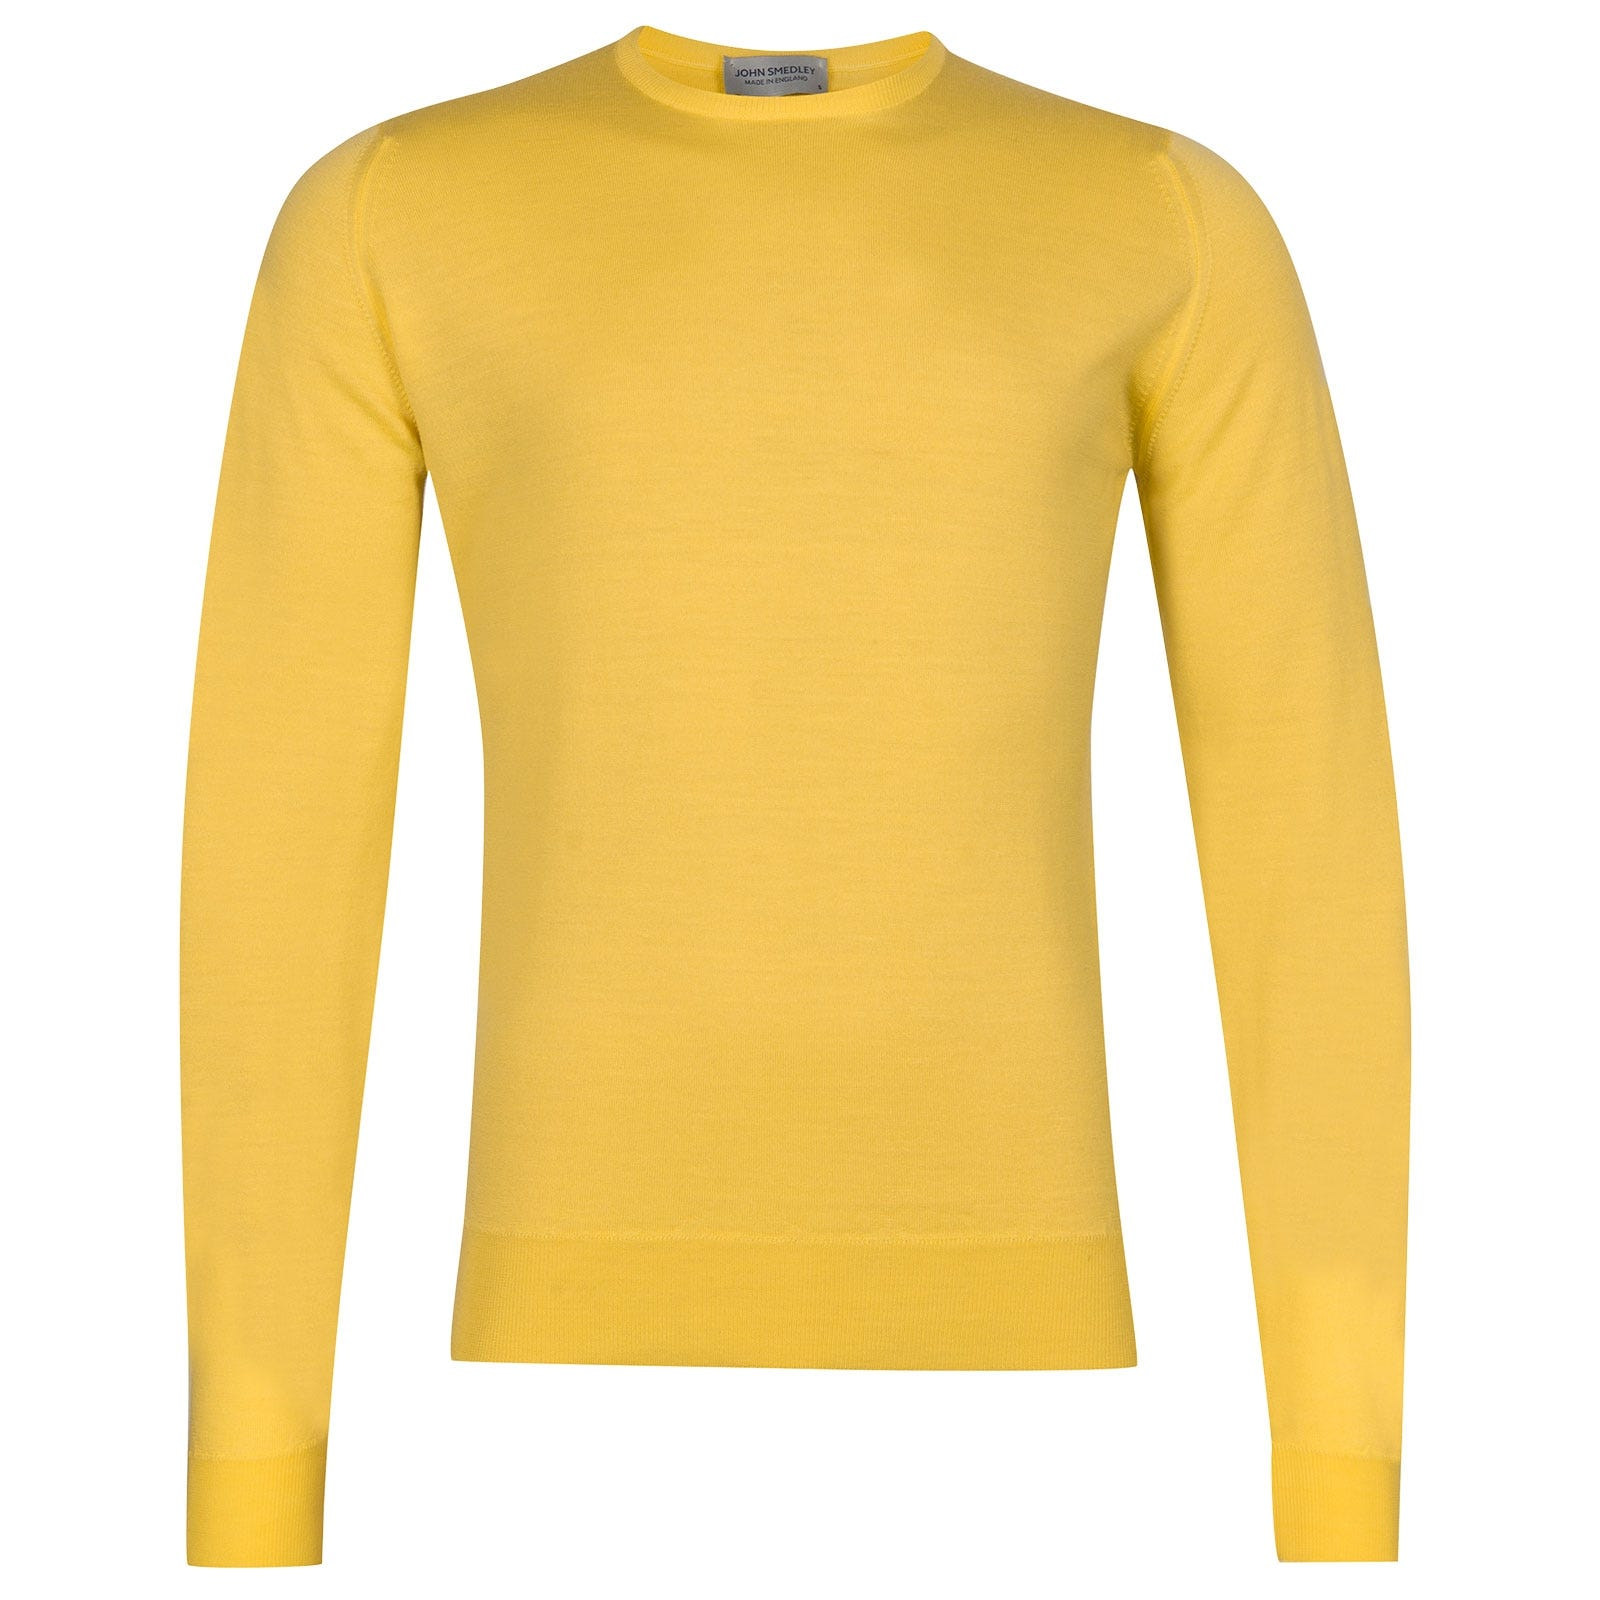 John Smedley Lundy Merino Wool Pullover in Solar Yellow-L